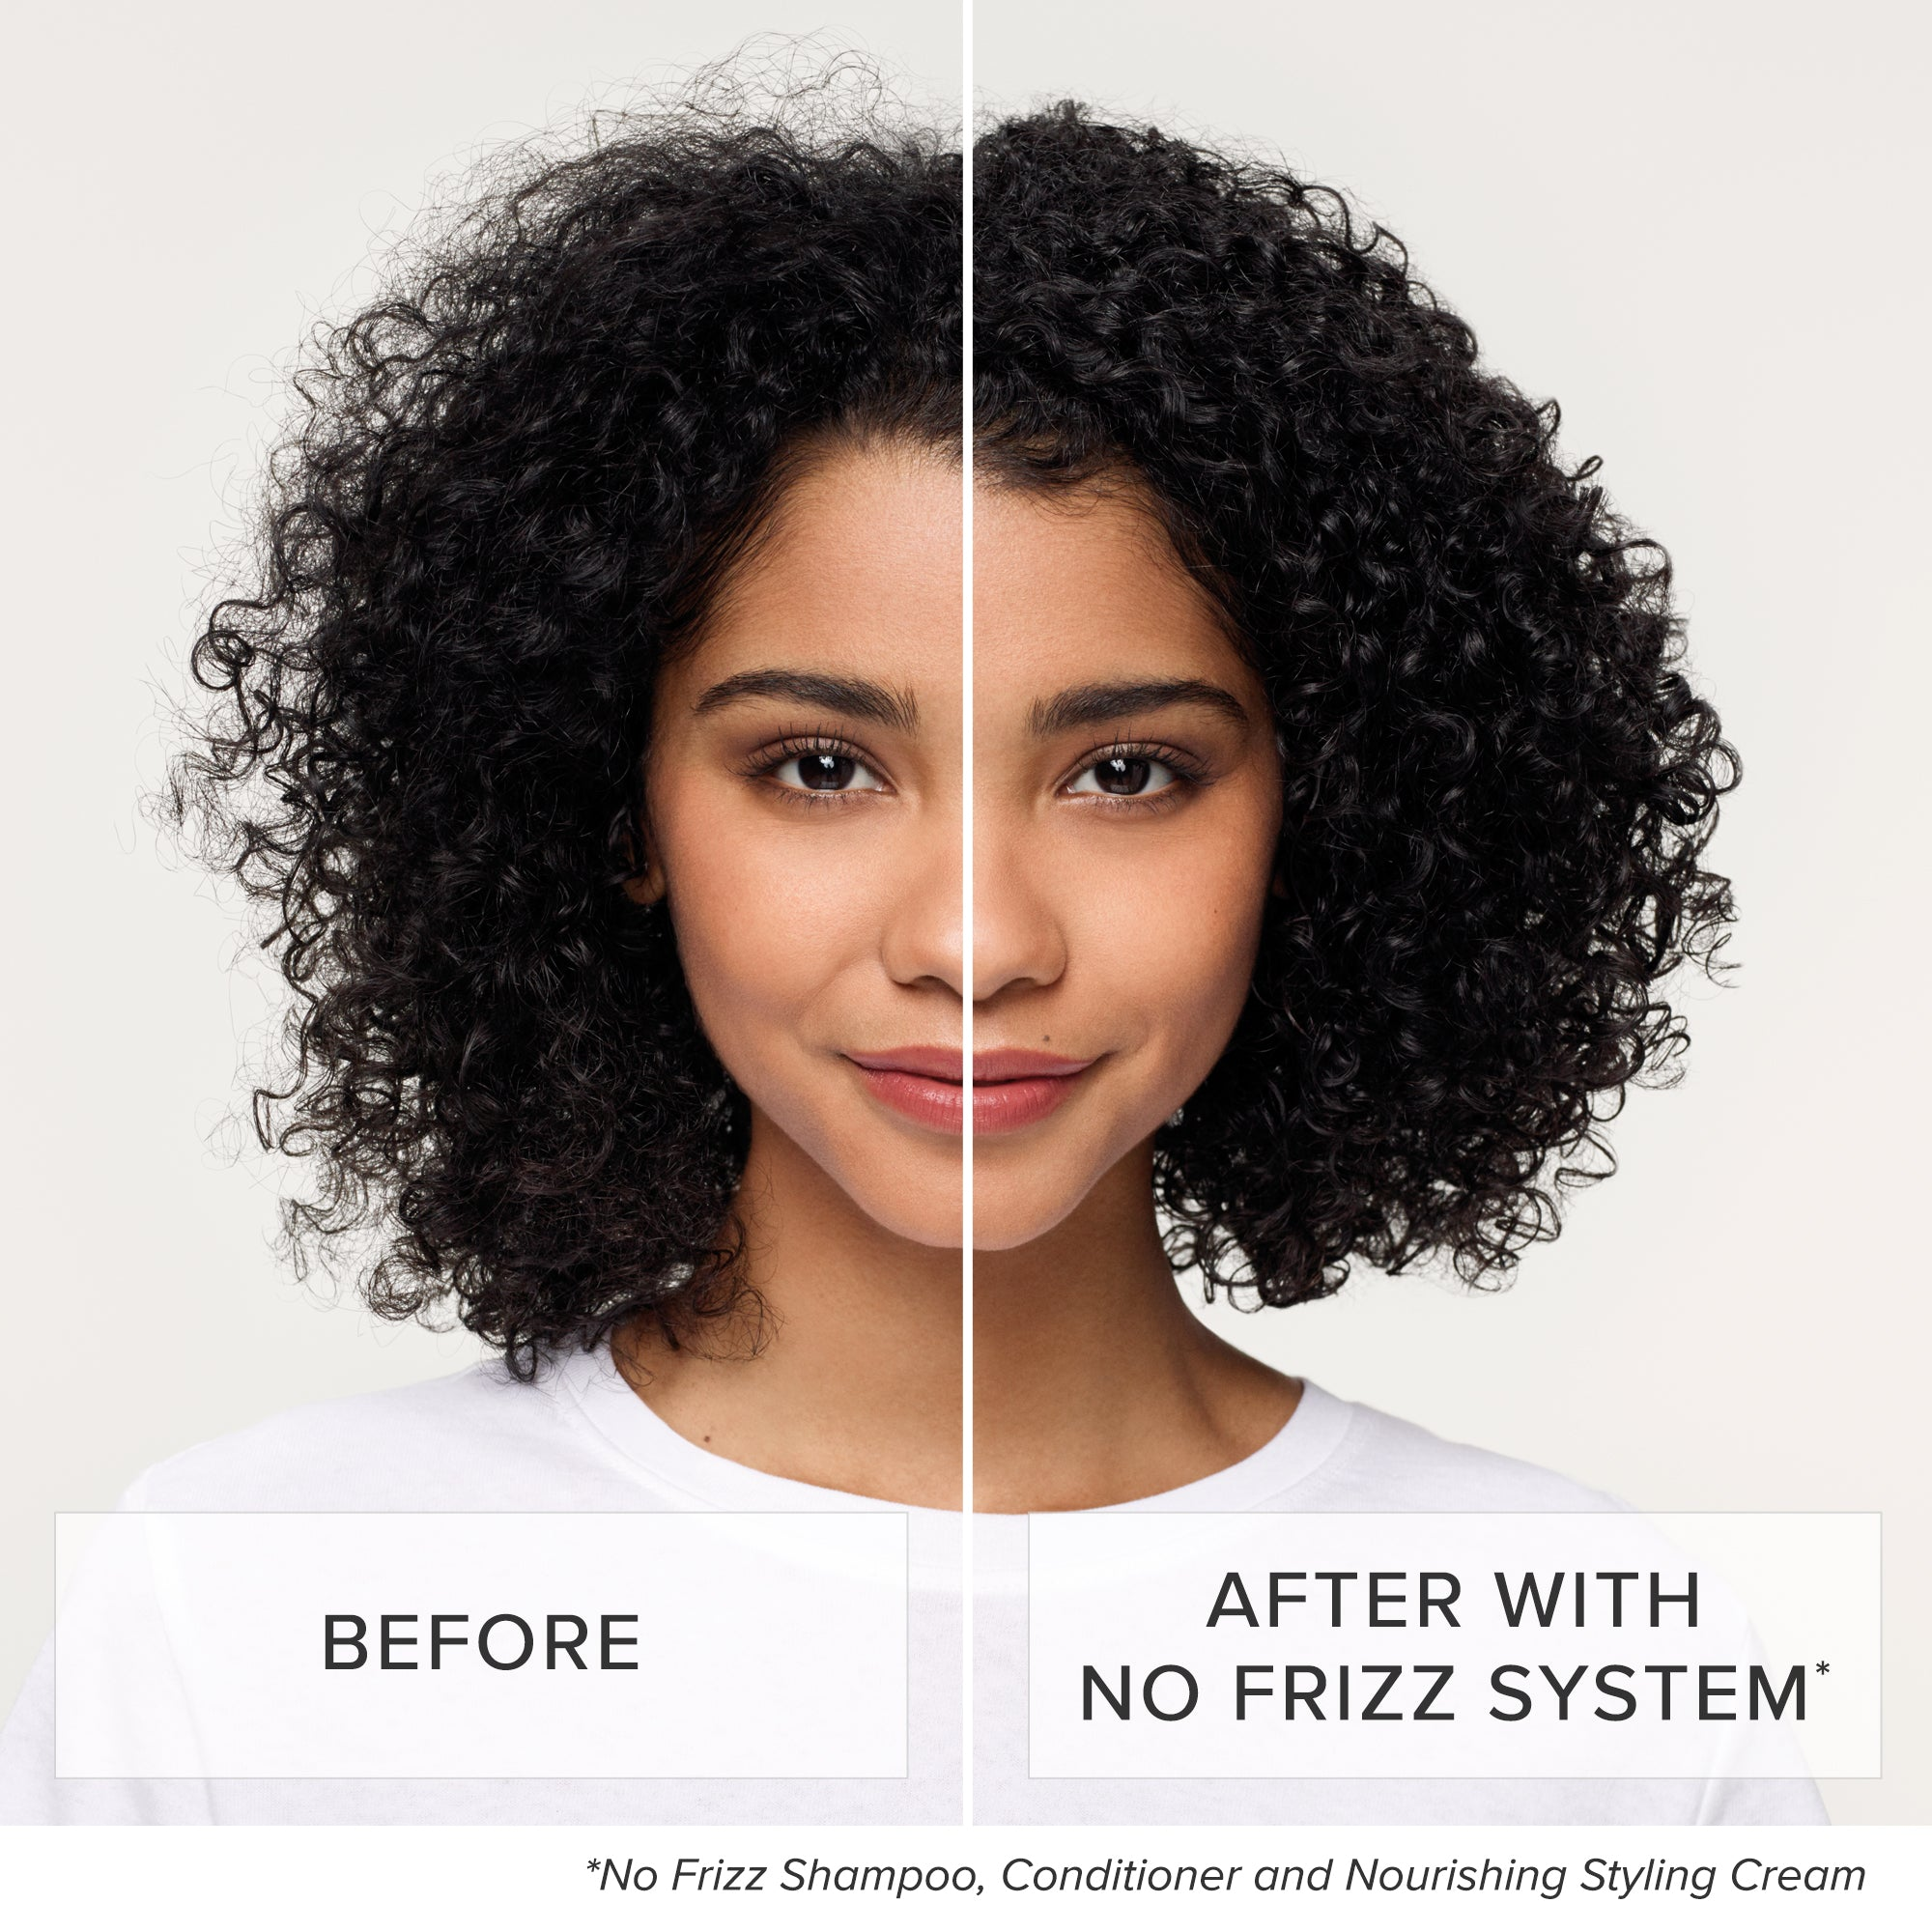 no frizz ® Conditioner